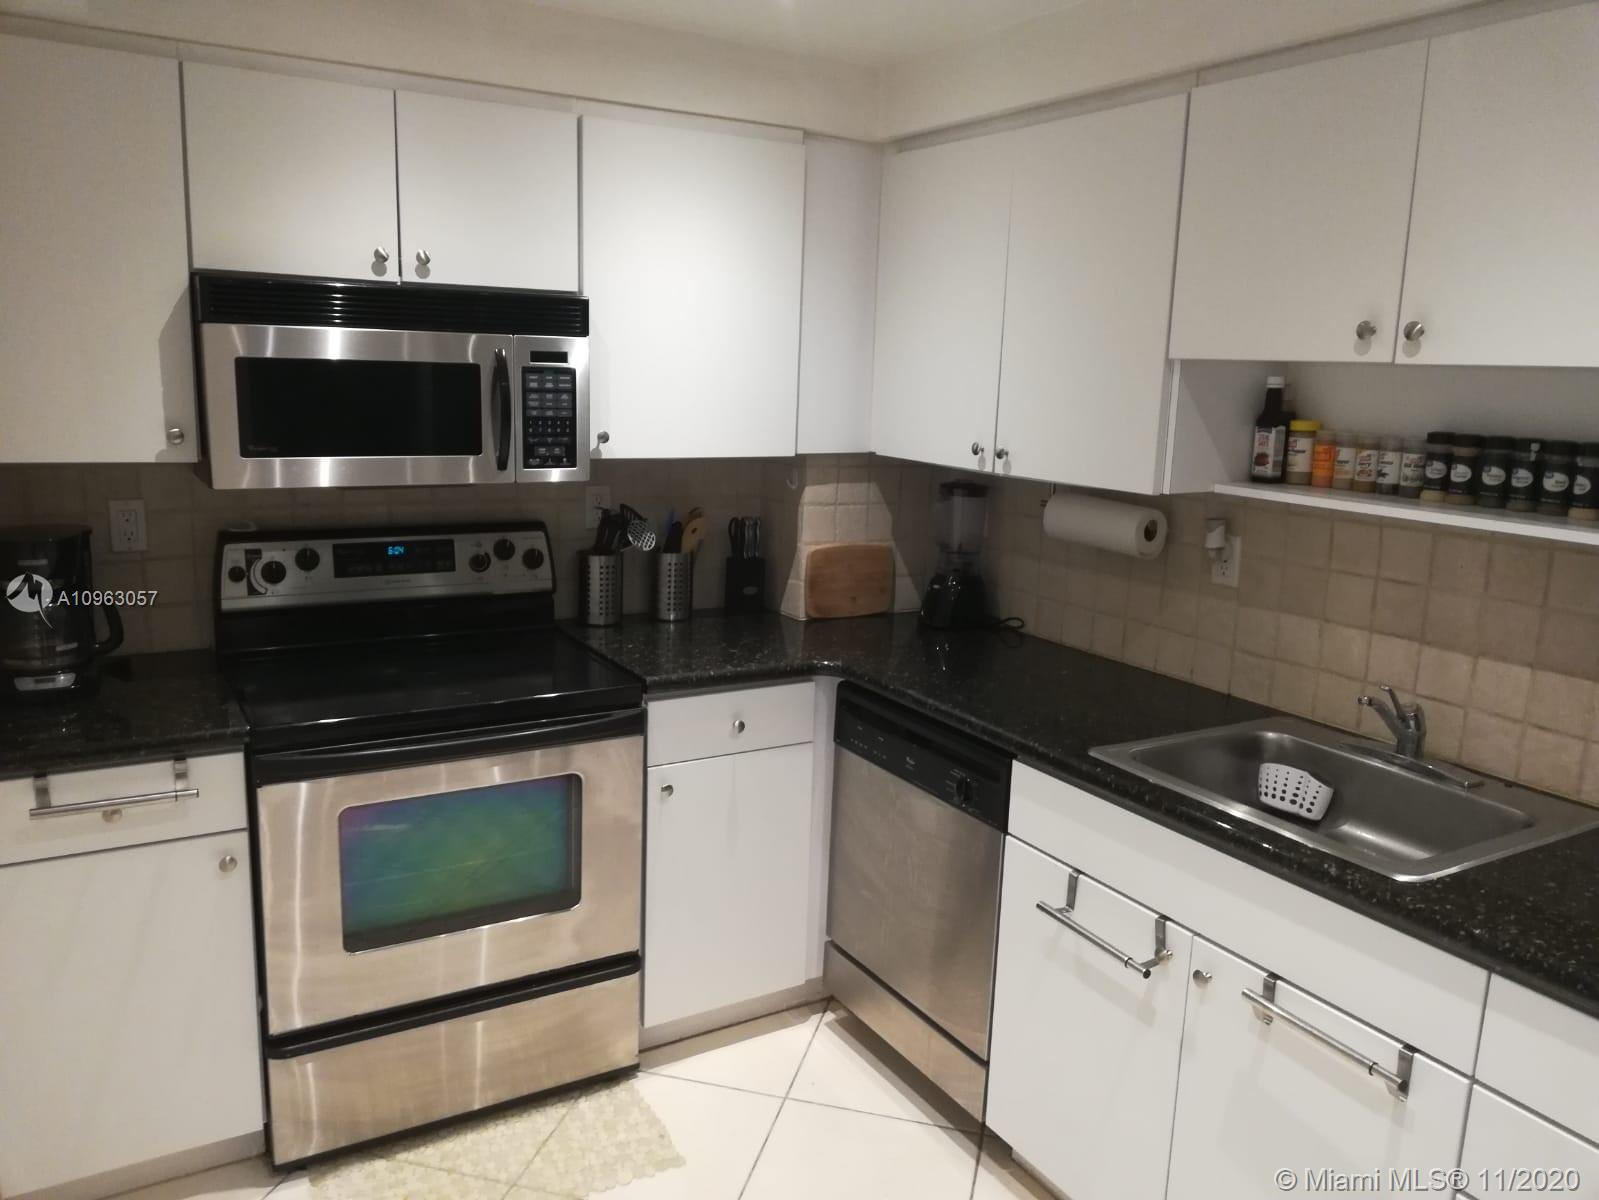 10350 W Bay Harbor Dr # 3M, Bay Harbor Islands, Florida 33154, 1 Bedroom Bedrooms, ,1 BathroomBathrooms,Residential Lease,For Rent,10350 W Bay Harbor Dr # 3M,A10963057